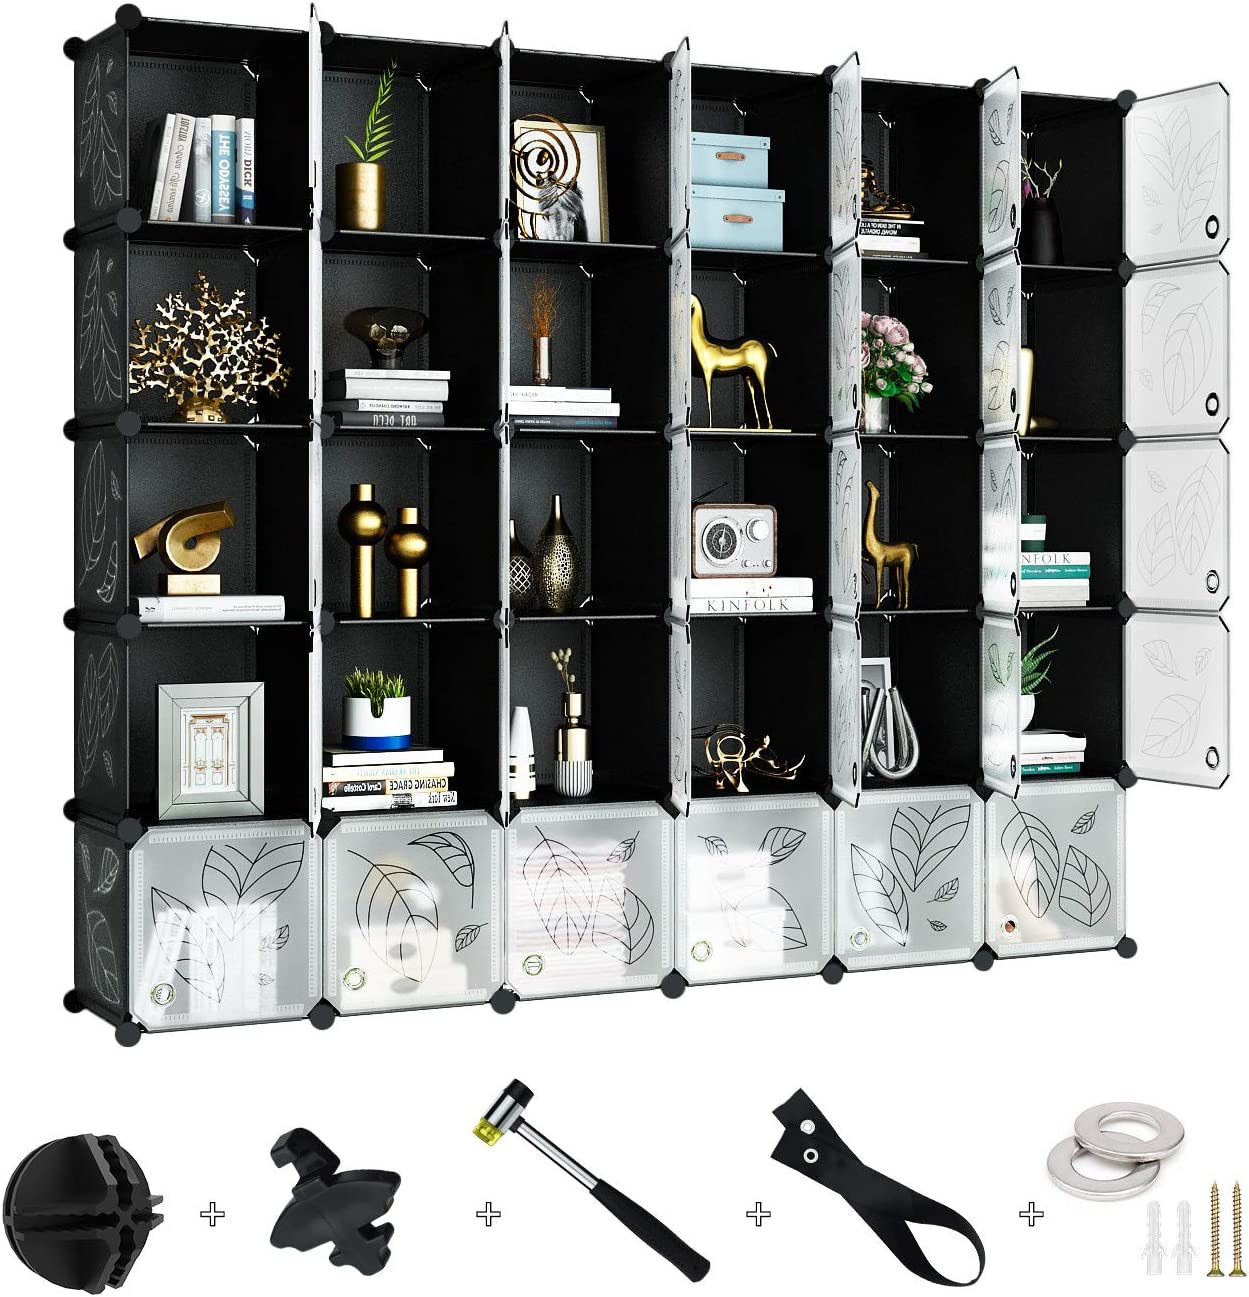 Greenstell 30 Cubes Storage Organizer with Doors,DIY Plastic Stackable Shelves Multifunctional Modular Bookcase Closet Cabinet for Books,Clothes,Toys,Artworks,Decorations (Black and White)